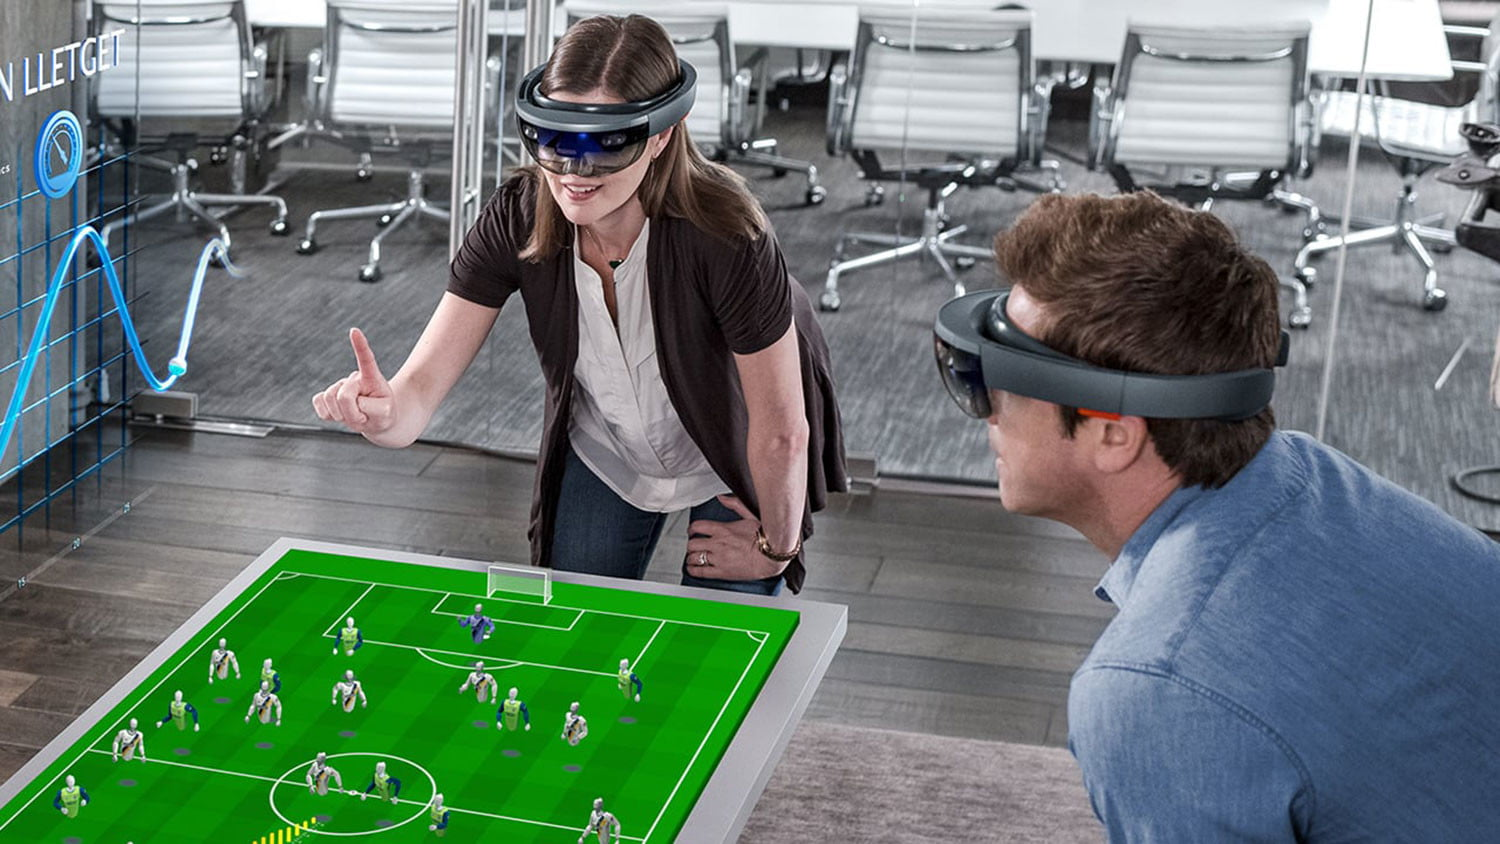 HoloLens concept lets you control your smart home via augmented reality